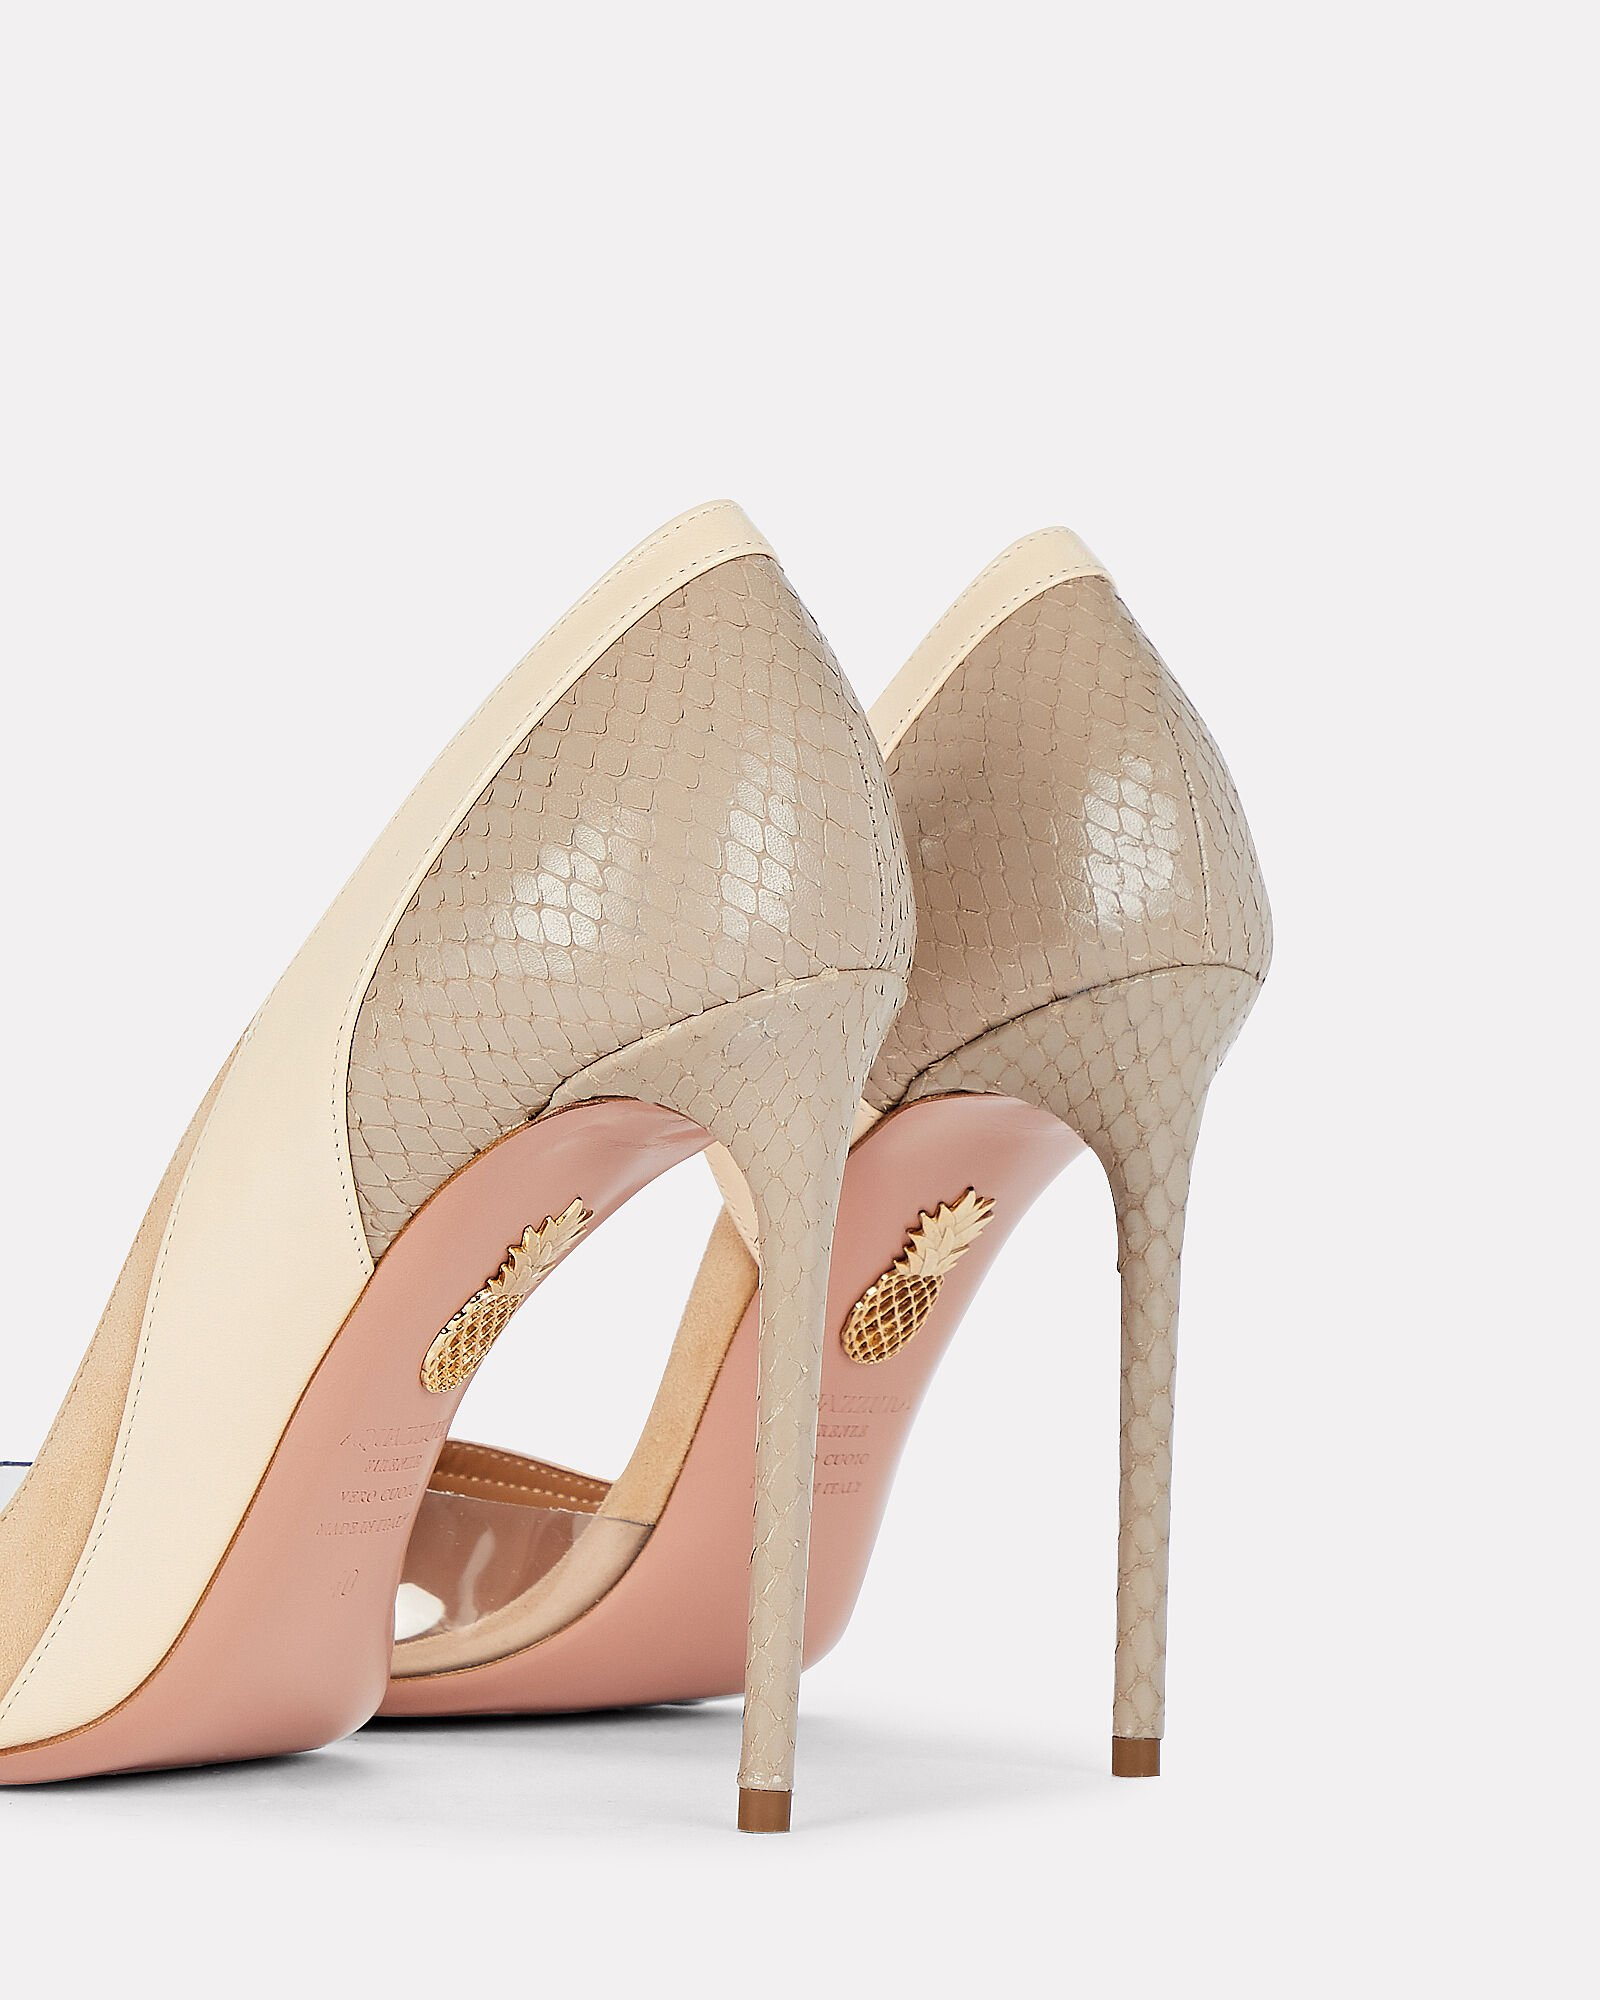 Seine 105 Pumps, BEIGE, hi-res